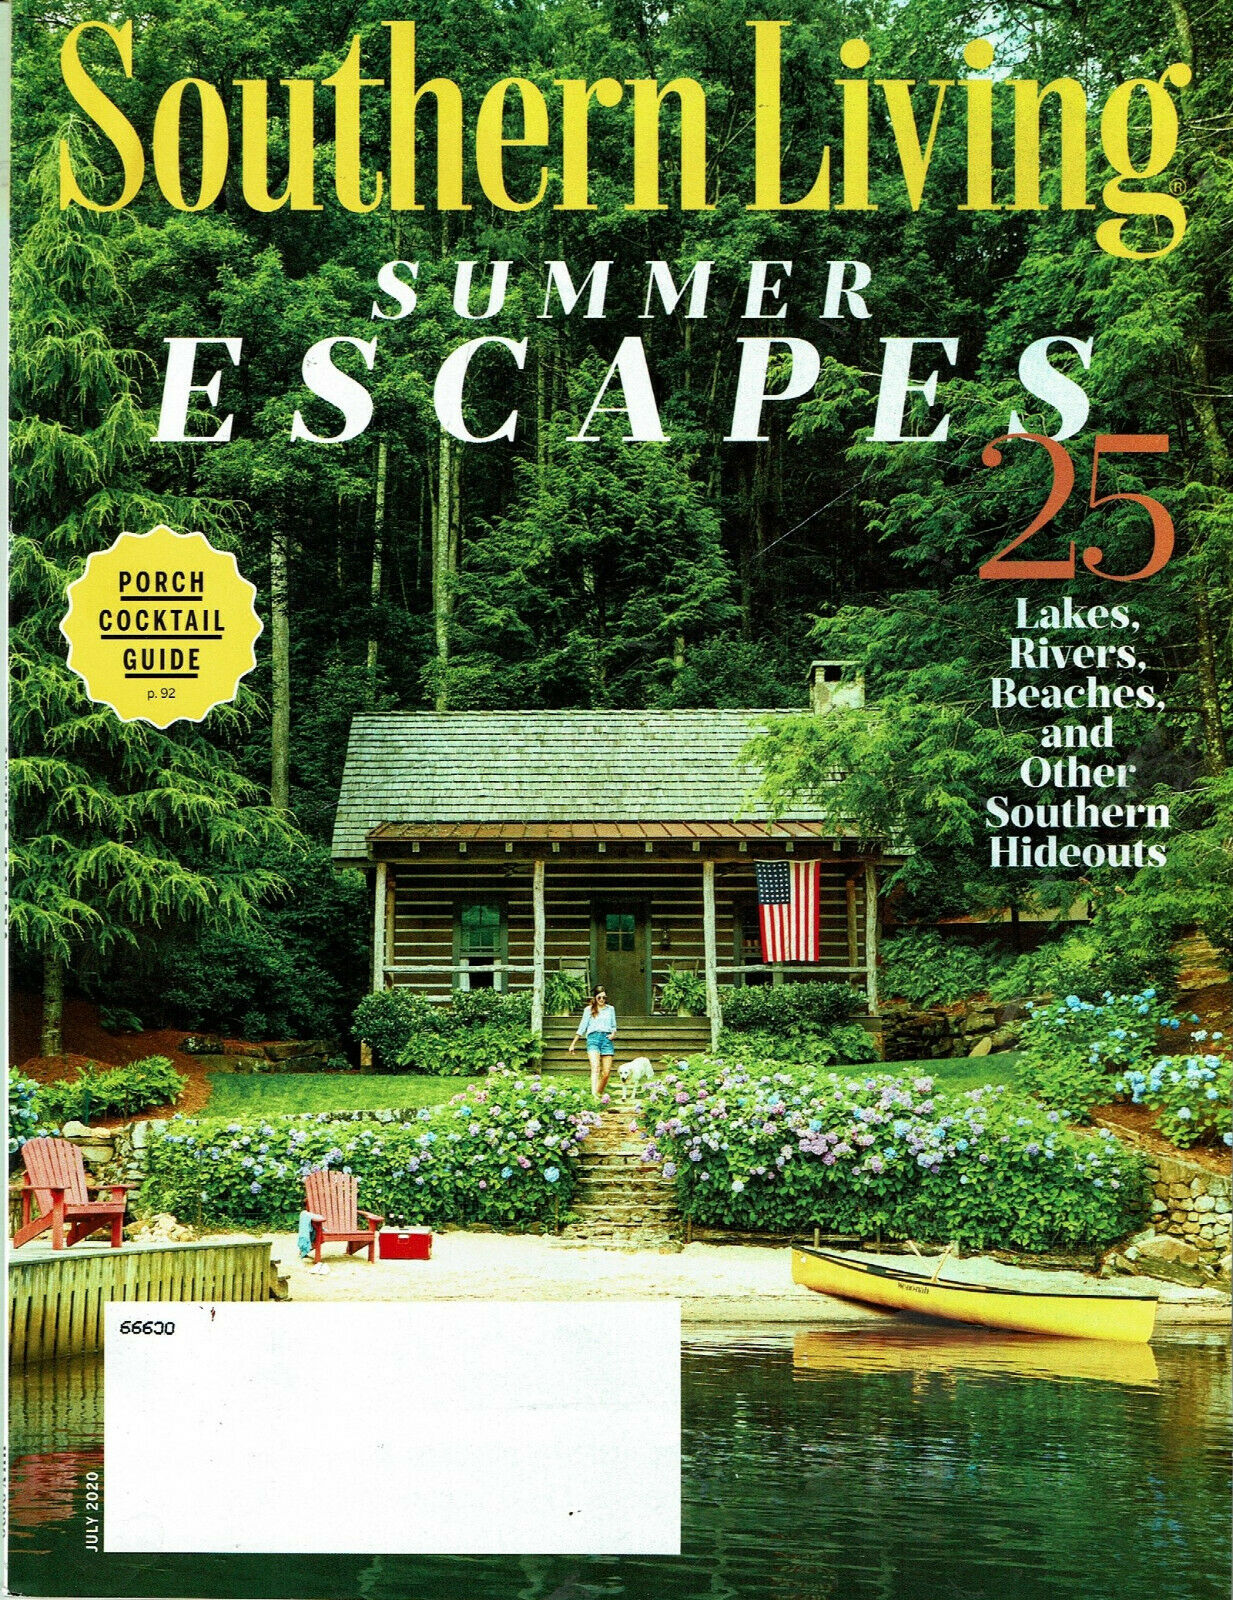 Southern Living Magazine July 2020 25 Summer Escapes Lakes Rivers Cocktail Guide - $3.99